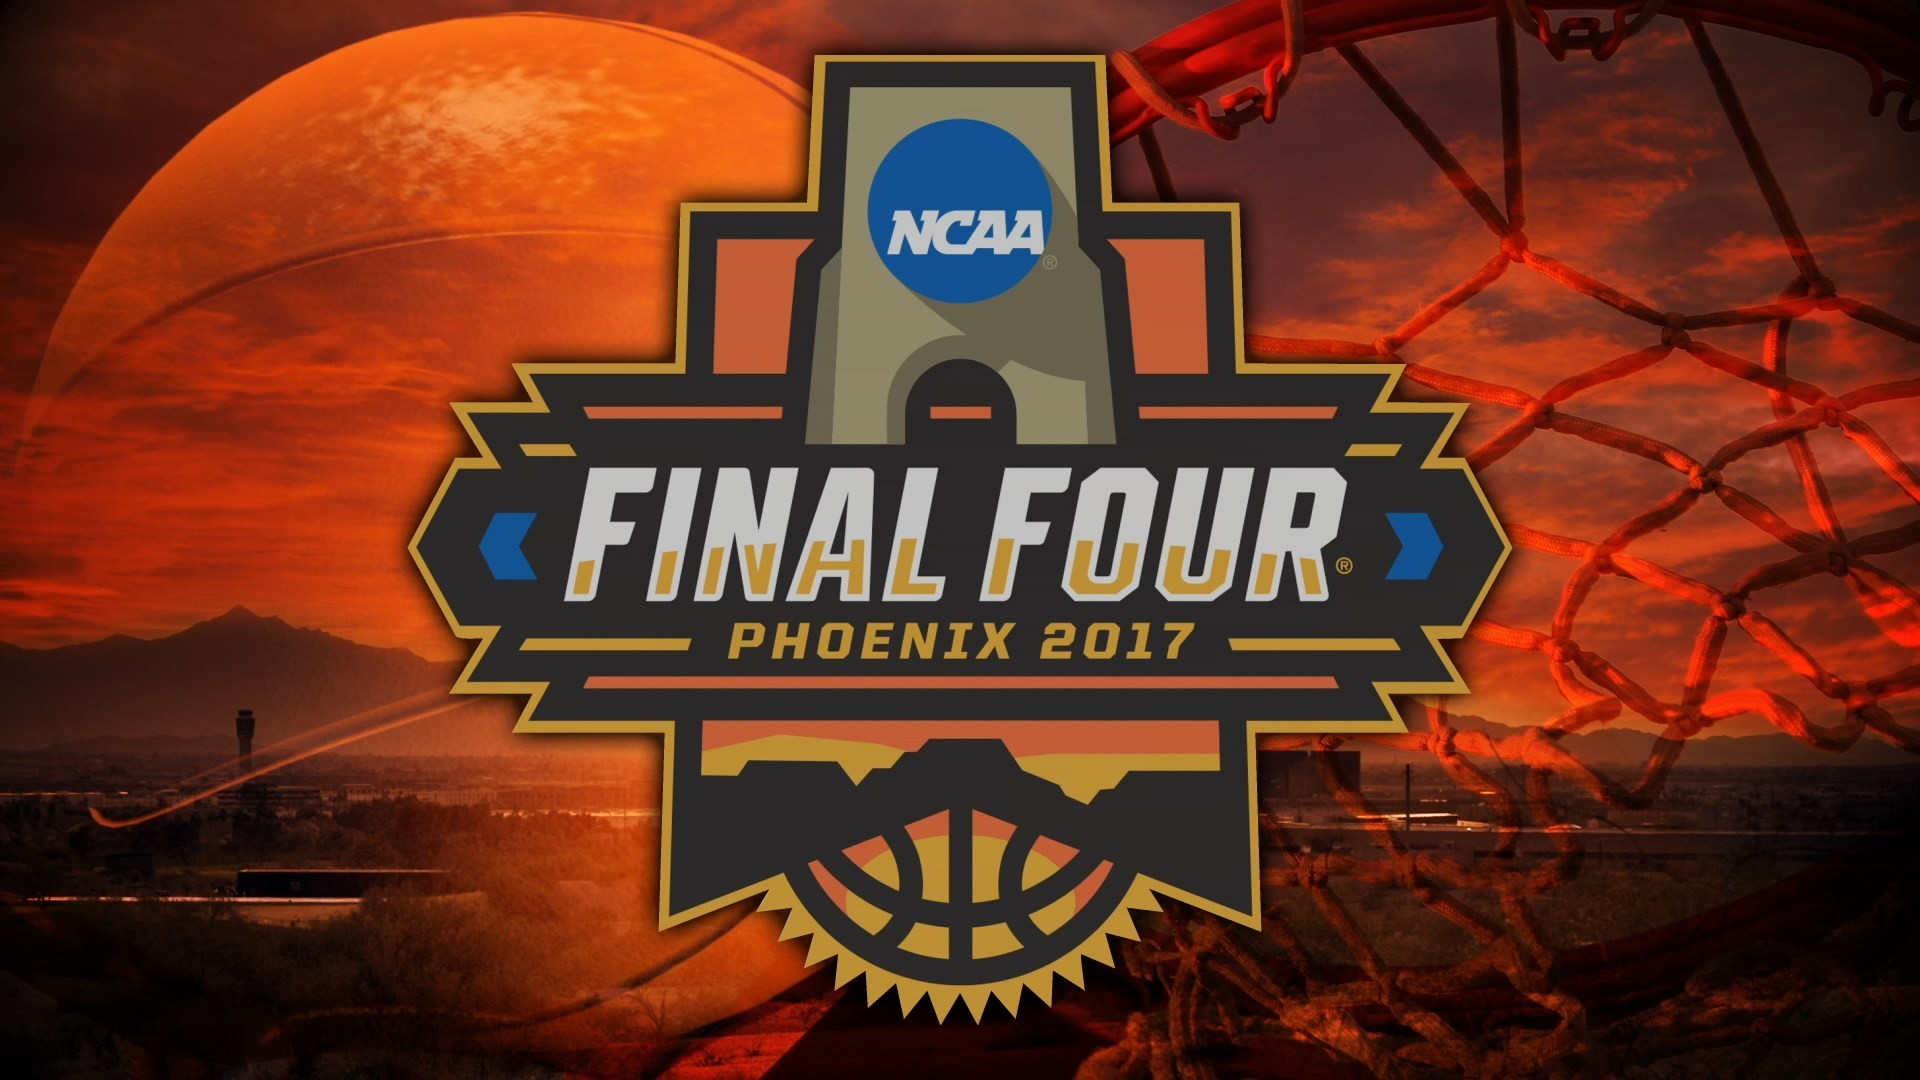 AG issues scam alert for fake Final Four basketball tickets